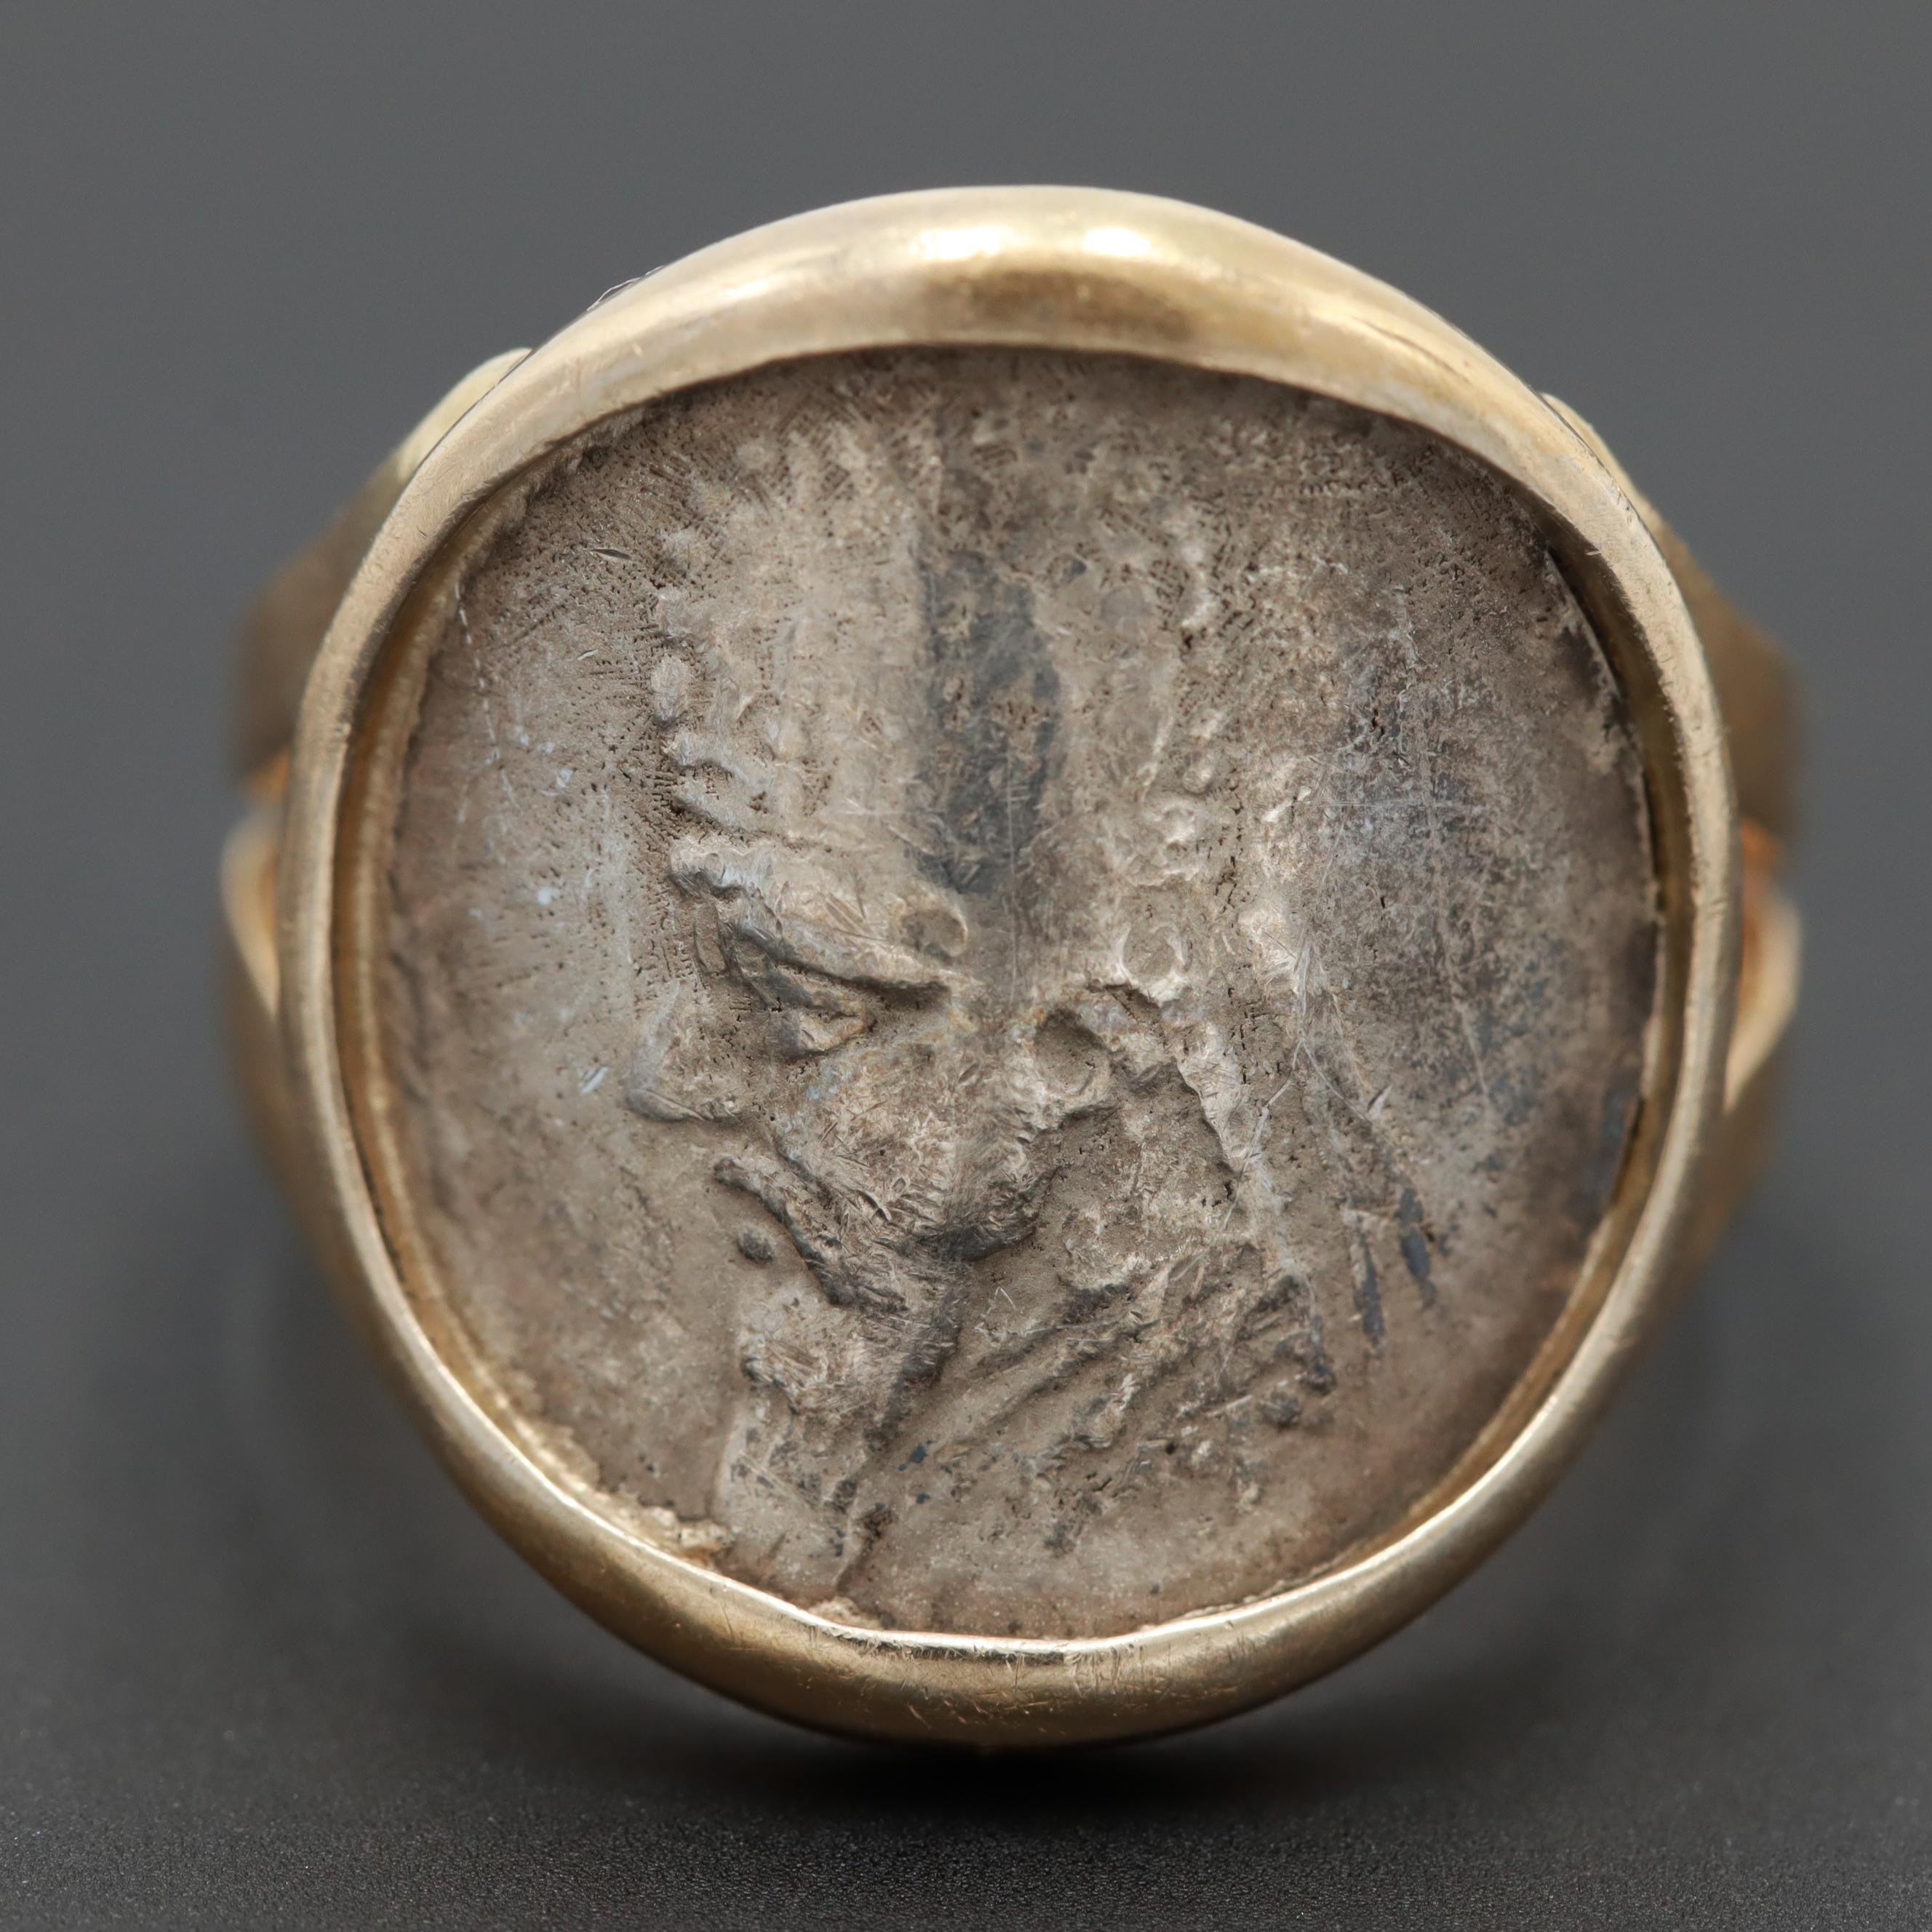 18K Yellow Gold Ring with Ancient Parthian Kingdom Silver Drachm Coin